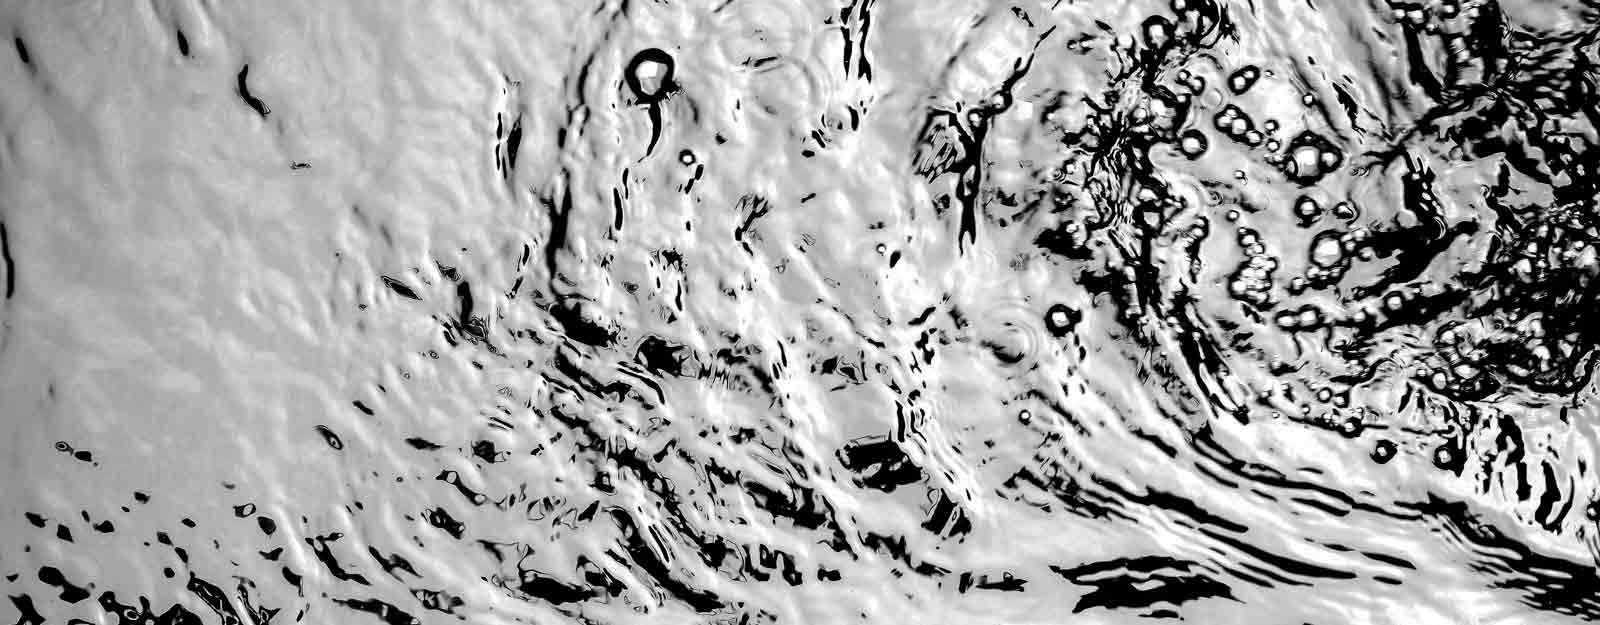 Photo of an agitated water surface.